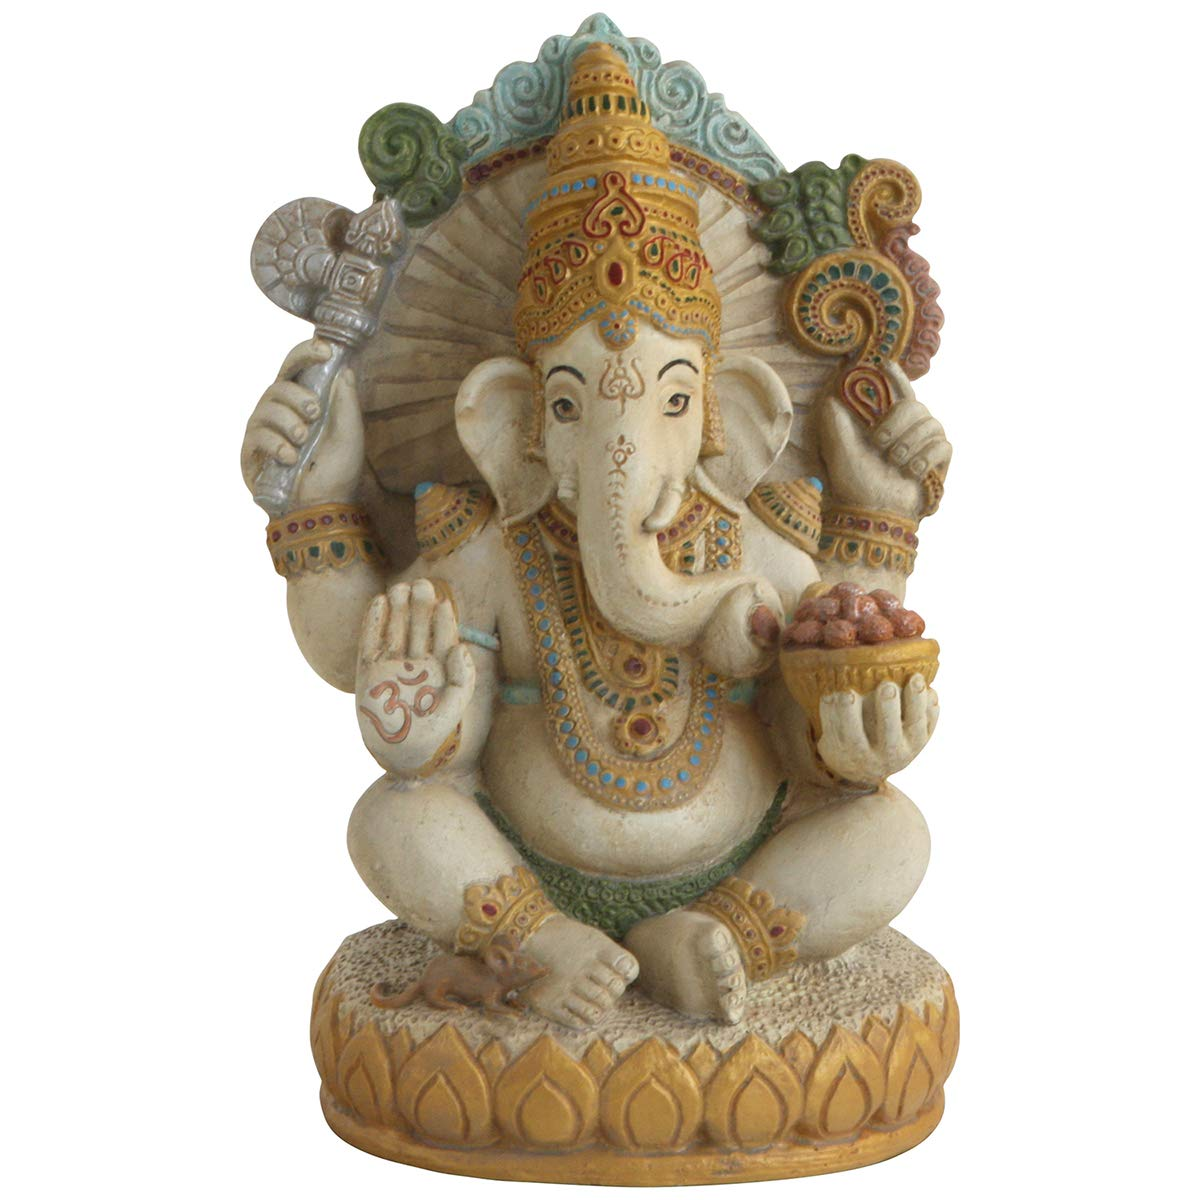 Buddha Groove Artistic Ganesh Statue with Colorful Detailing on All Sides Made of Cast Stone for Indoor Placement Sturdy Construction Measures 12 inches Tall